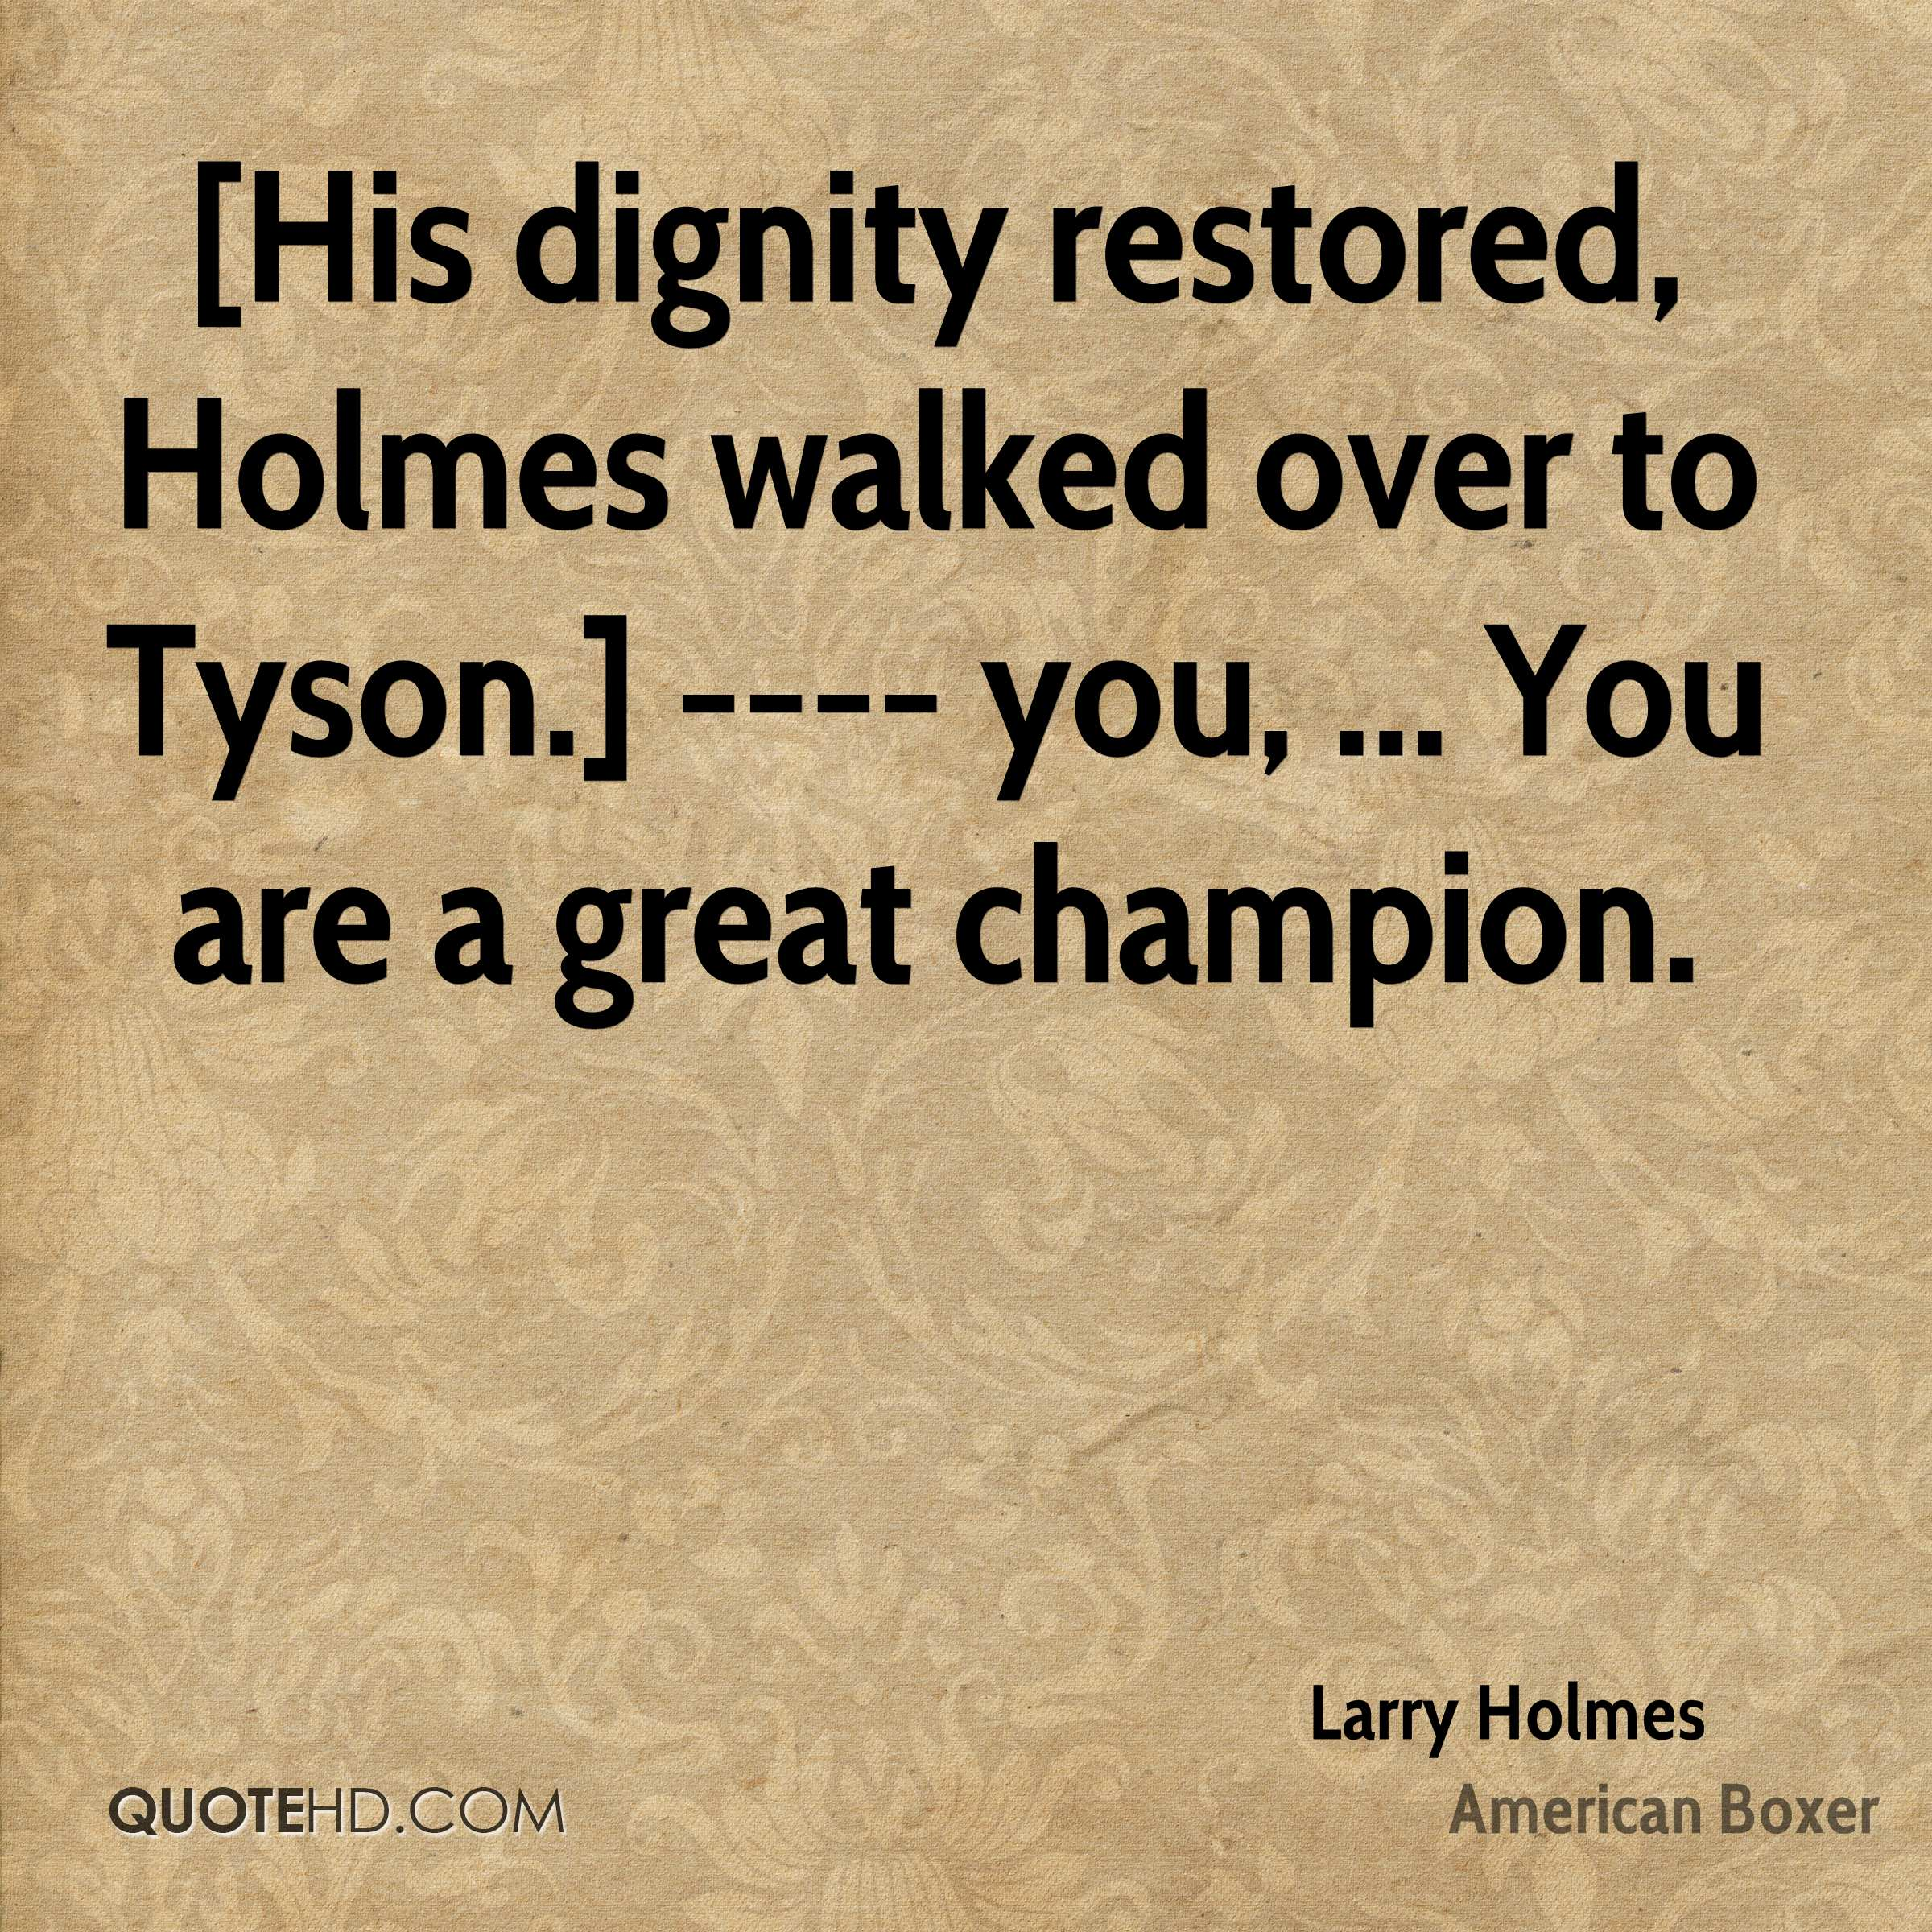 [His dignity restored, Holmes walked over to Tyson.] ---- you, ... You are a great champion.